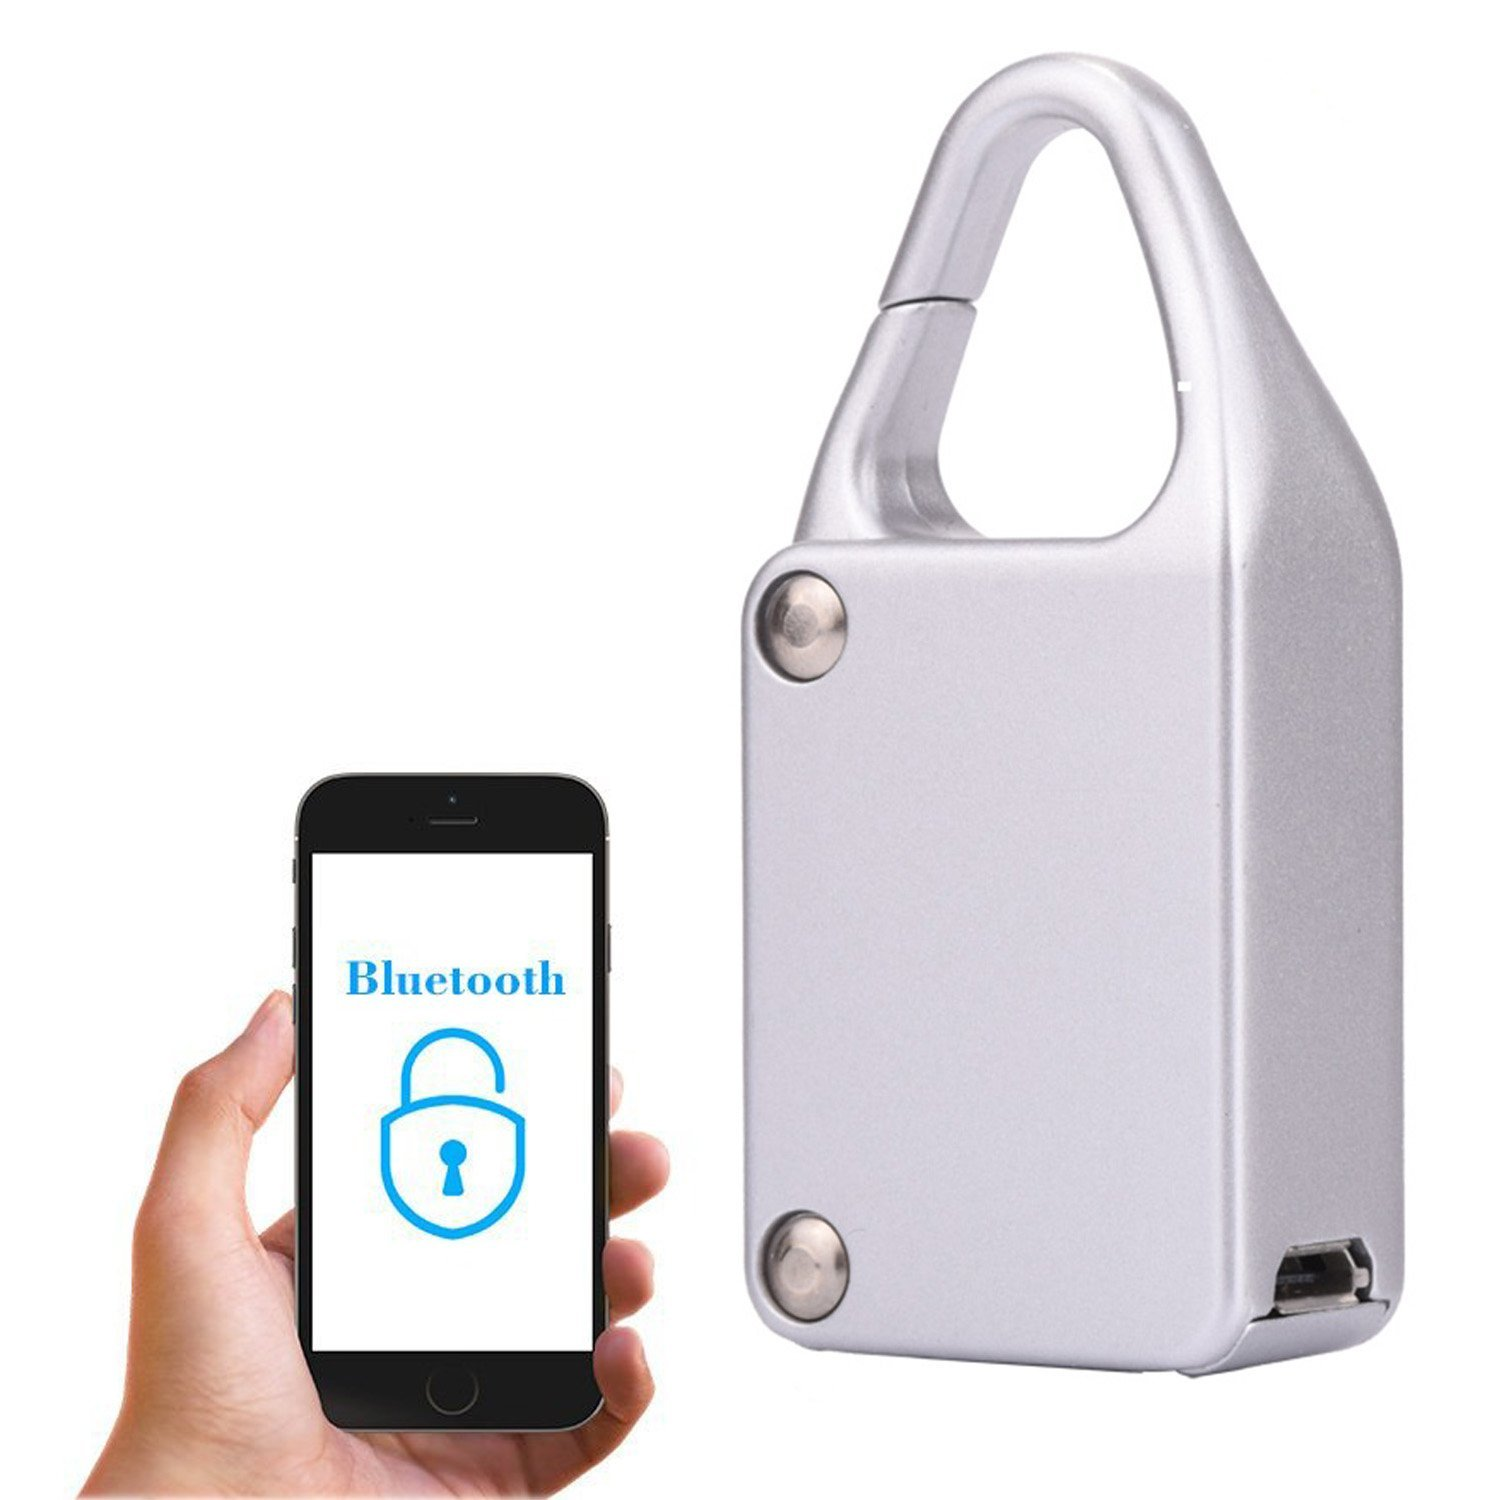 Smart Bluetooth Lock Waterproof Keyless Remote Control Locker Outdoor Anti Theft PadLock for Intelligent Phone Android/IOS APP <br>